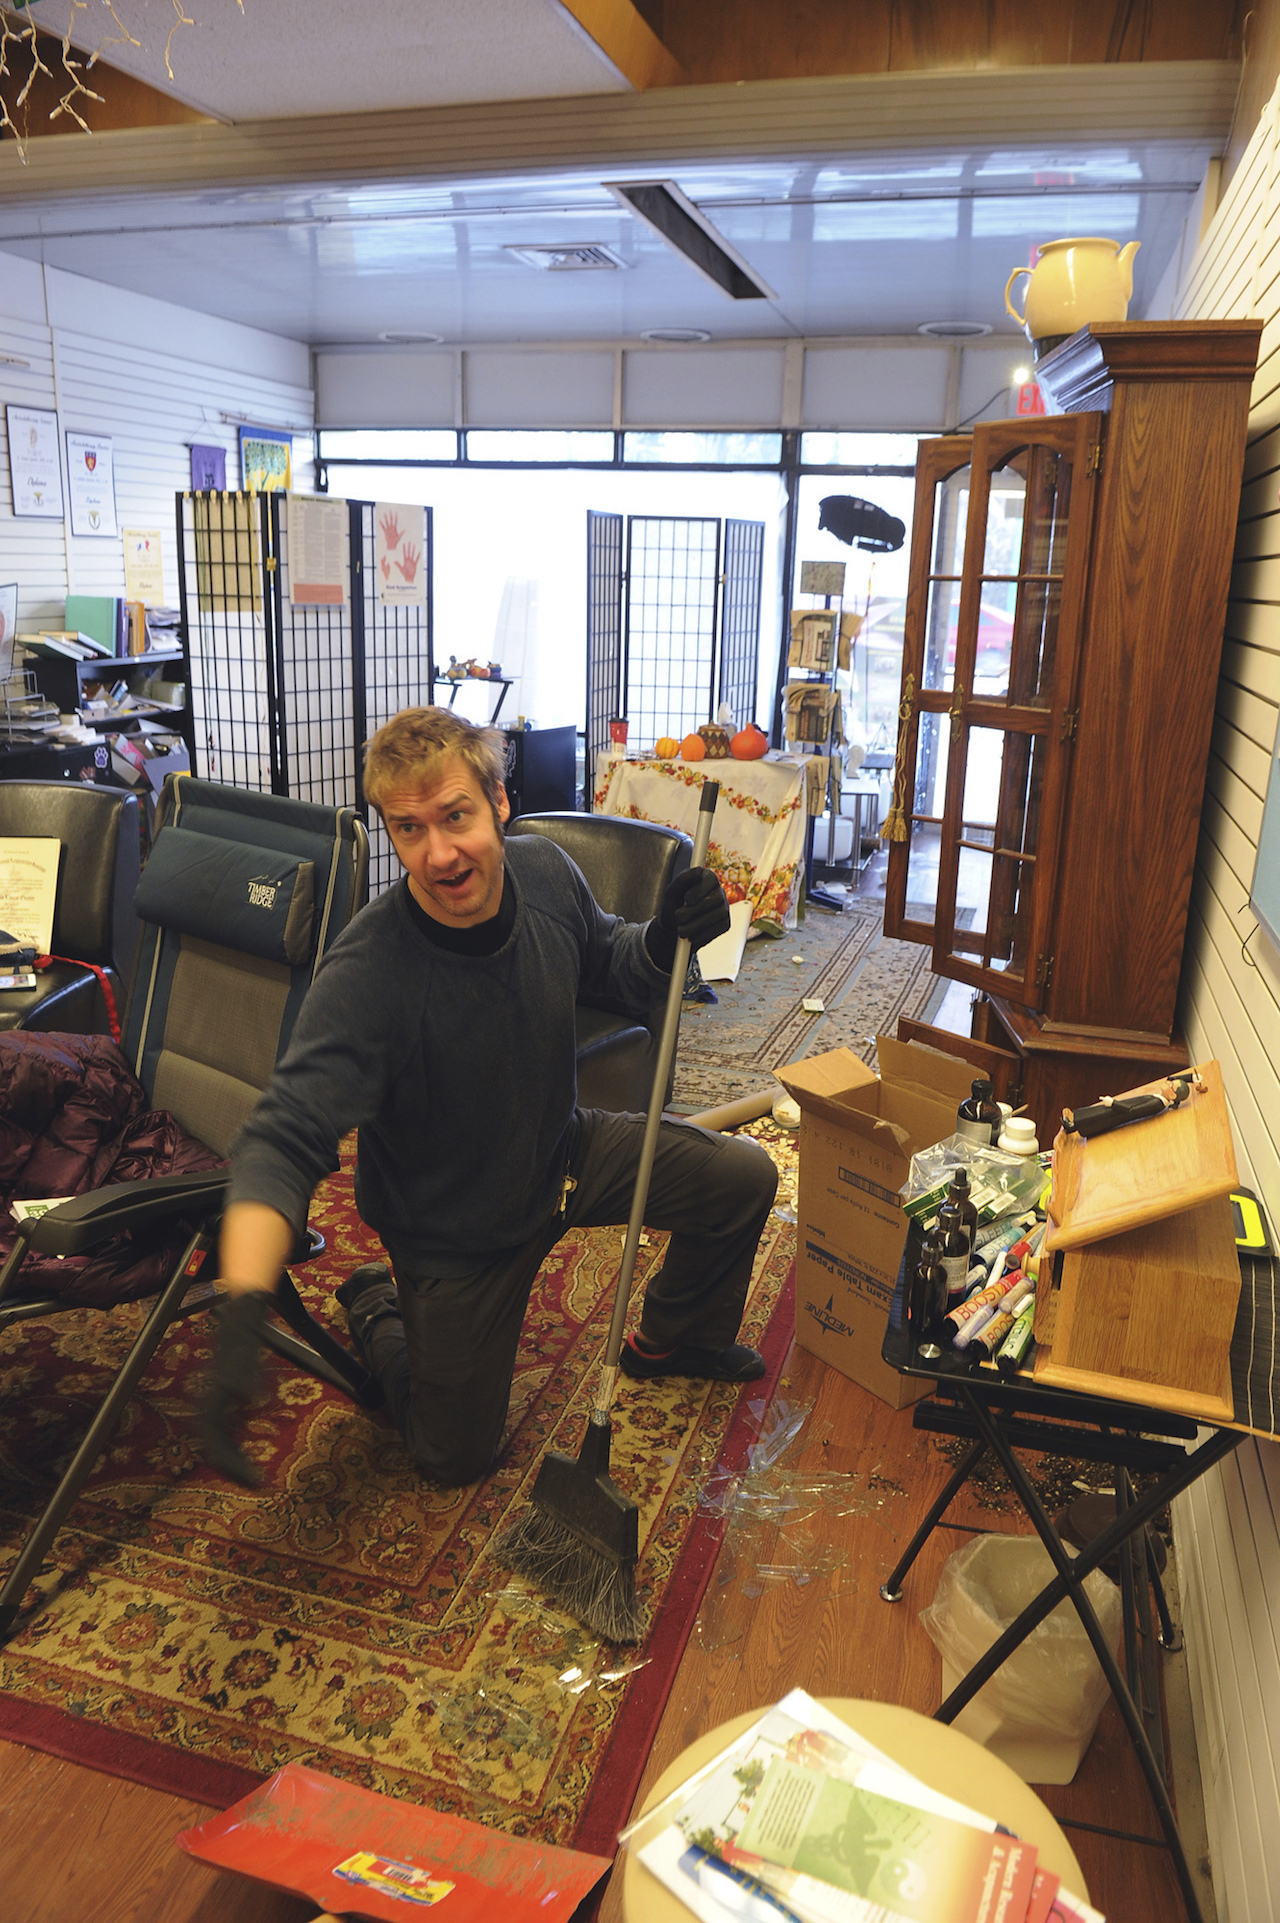 <div class='meta'><div class='origin-logo' data-origin='AP'></div><span class='caption-text' data-credit='AP Photo/Mike Dinneen'>Tristan Covina helps clean up broken glass in the offices of Institute Alaska in Anchorage, Alaska following the morning's earthquake which caused damage to the local area.</span></div>